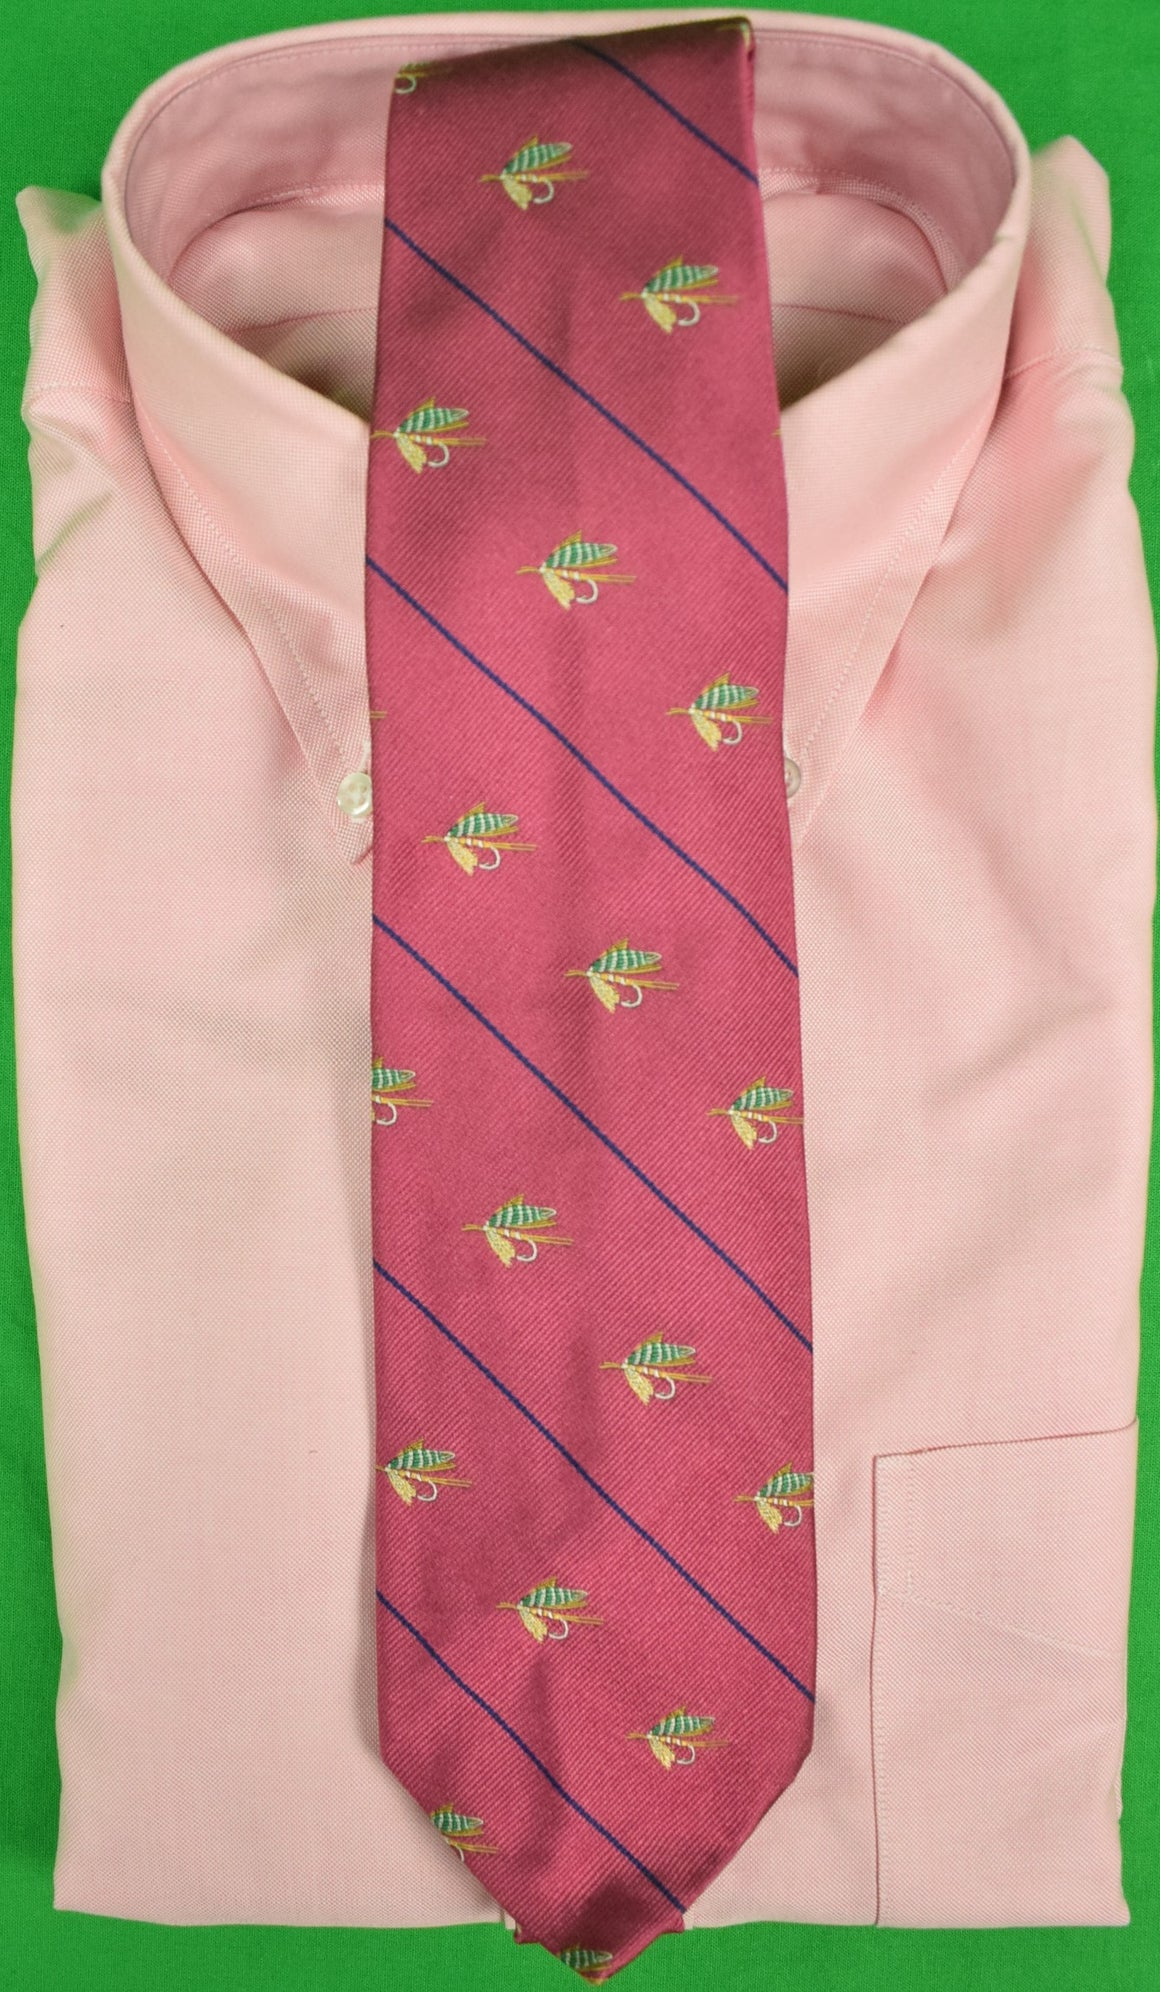 Polo by Ralph Lauren Italian Dusty Rose Silk Tie w/ Trout Fly Motif